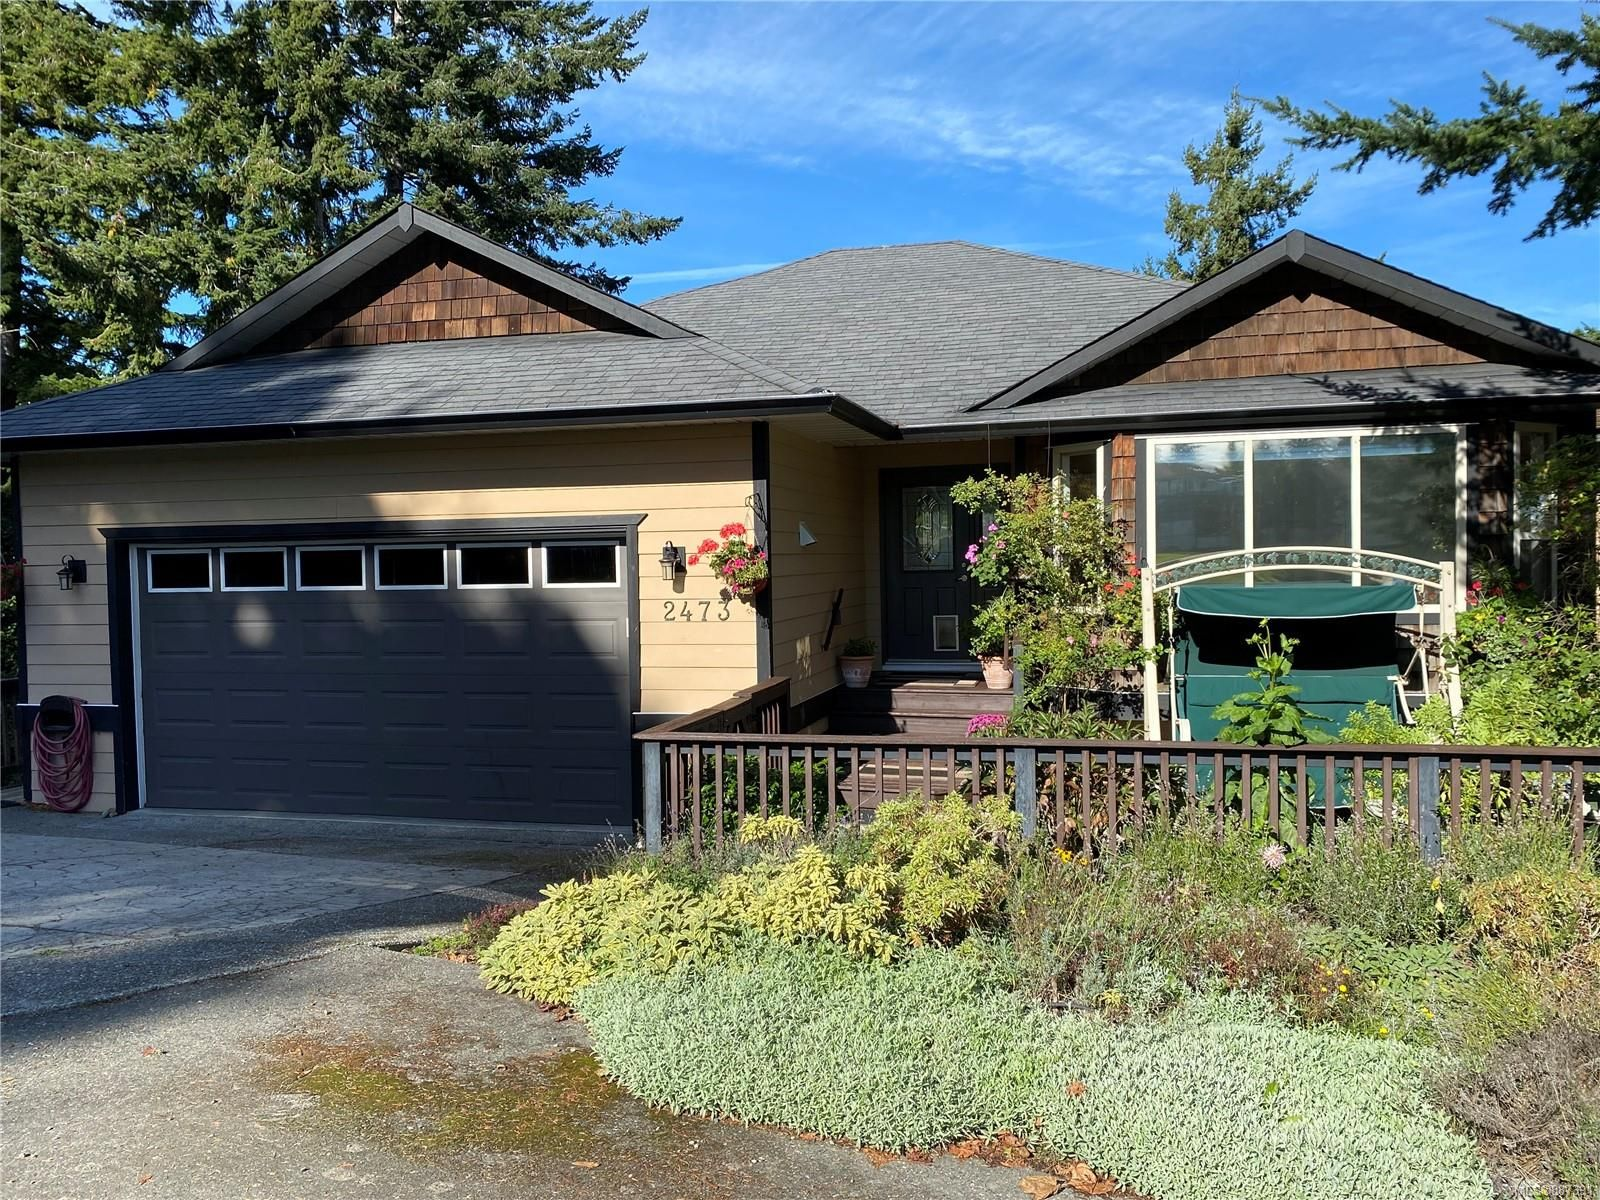 Main Photo: 2473 Valleyview Pl in : Sk Broomhill House for sale (Sooke)  : MLS®# 887391